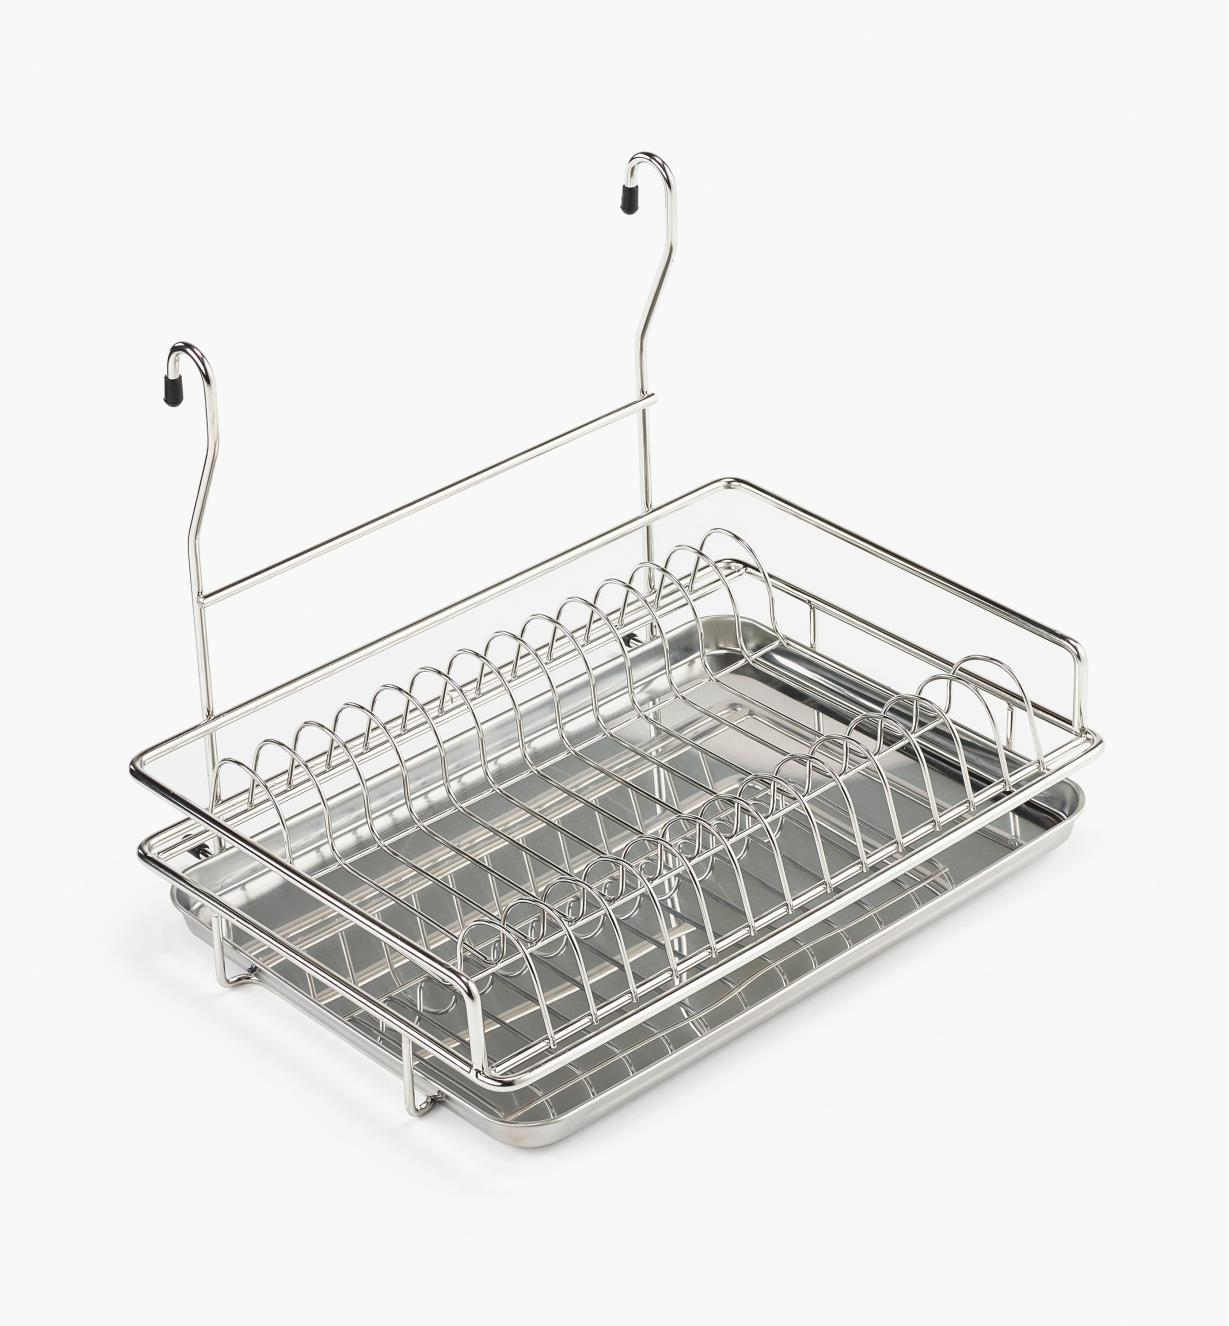 12K3442 - Dish Rack, Small